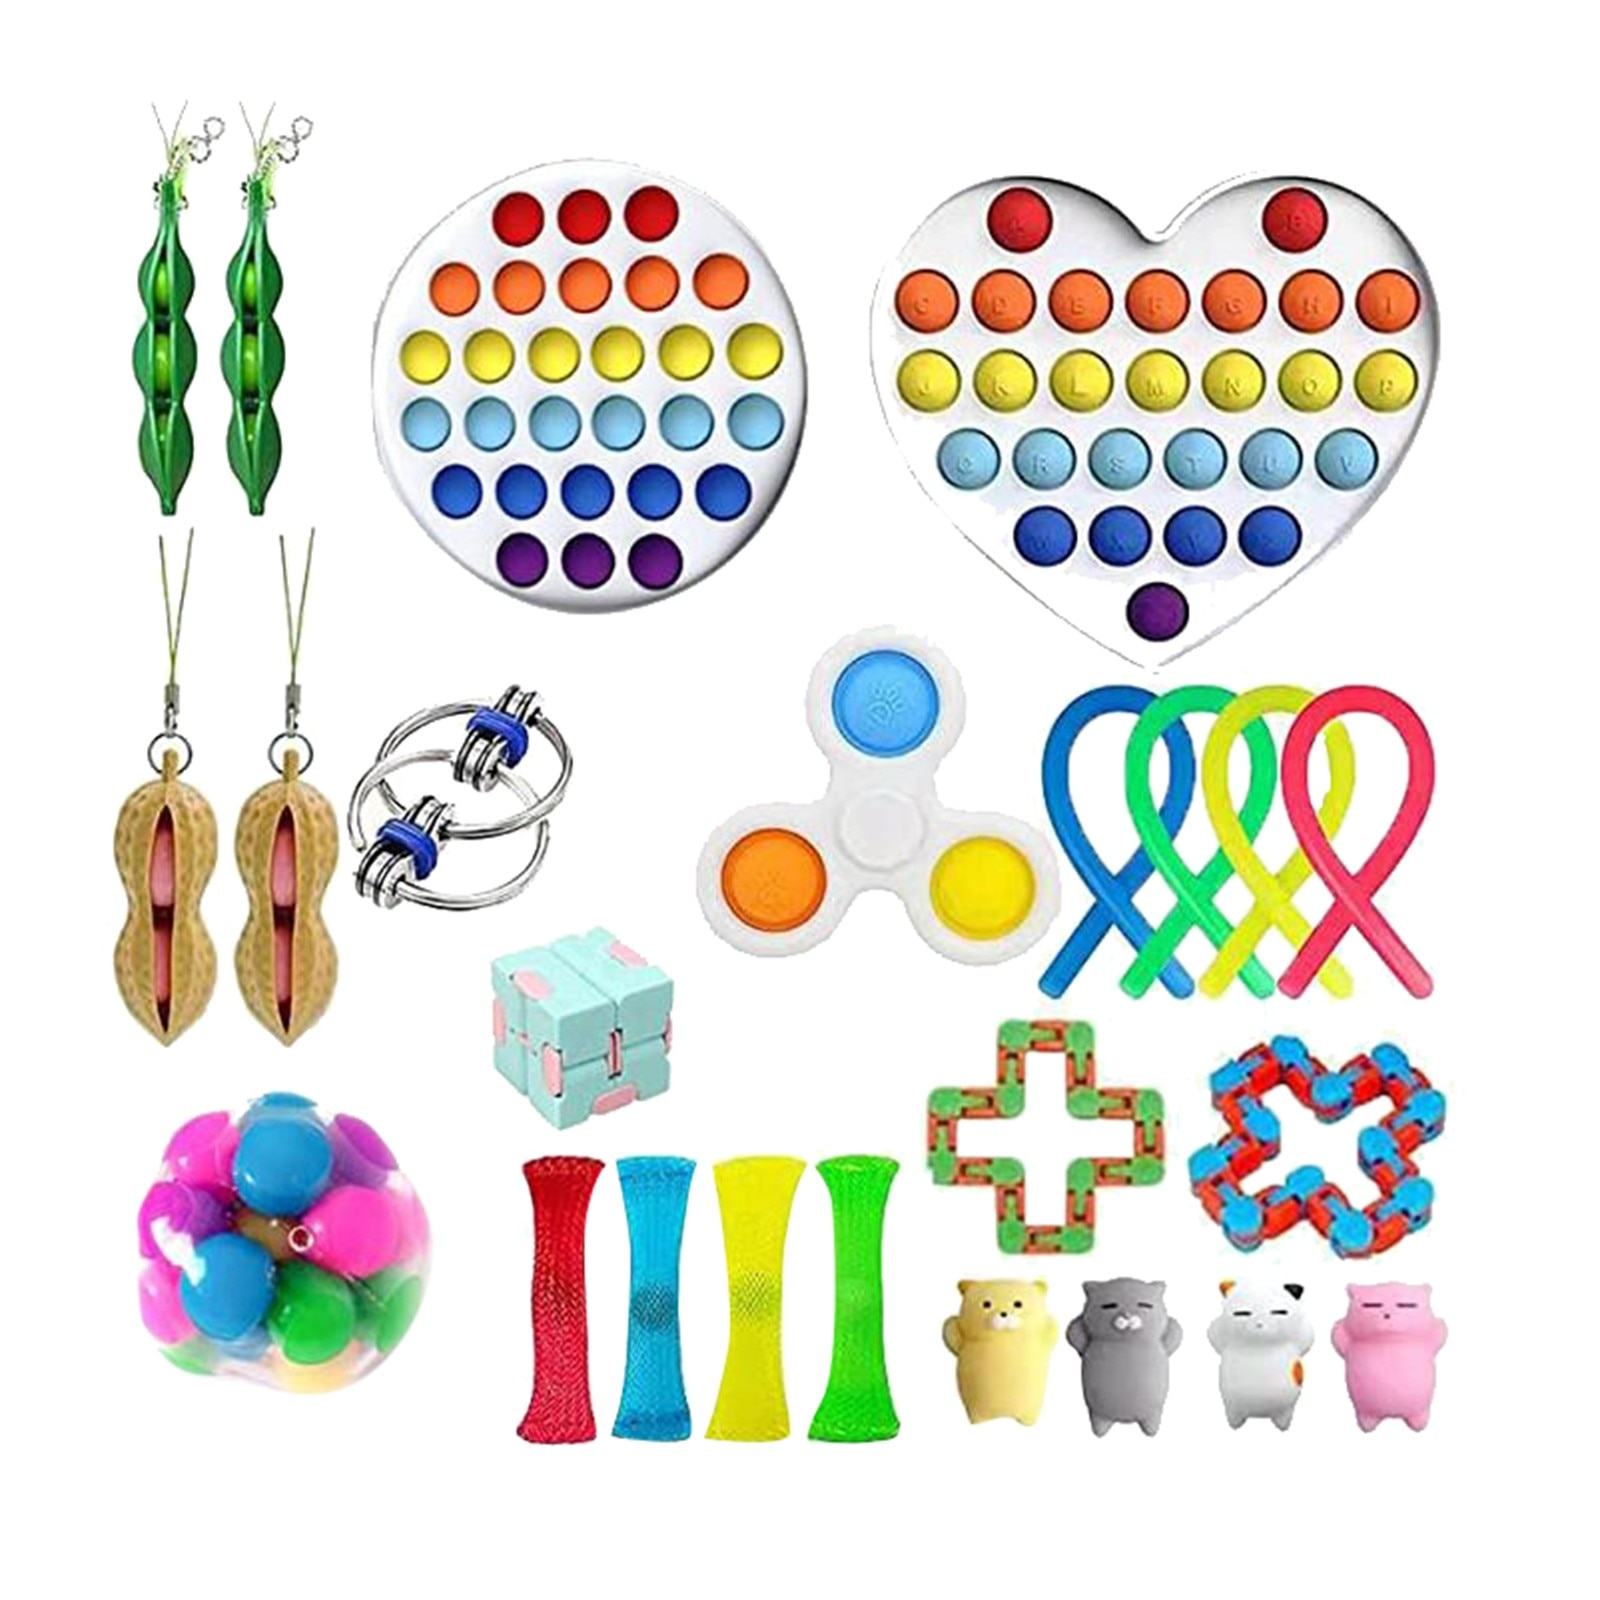 50 Kinds Fidget Toys Set Pack AntiStress Toy Marble Relief Gift for Adult Children Sensory Antistress Relief Figet Toys Box Set enlarge